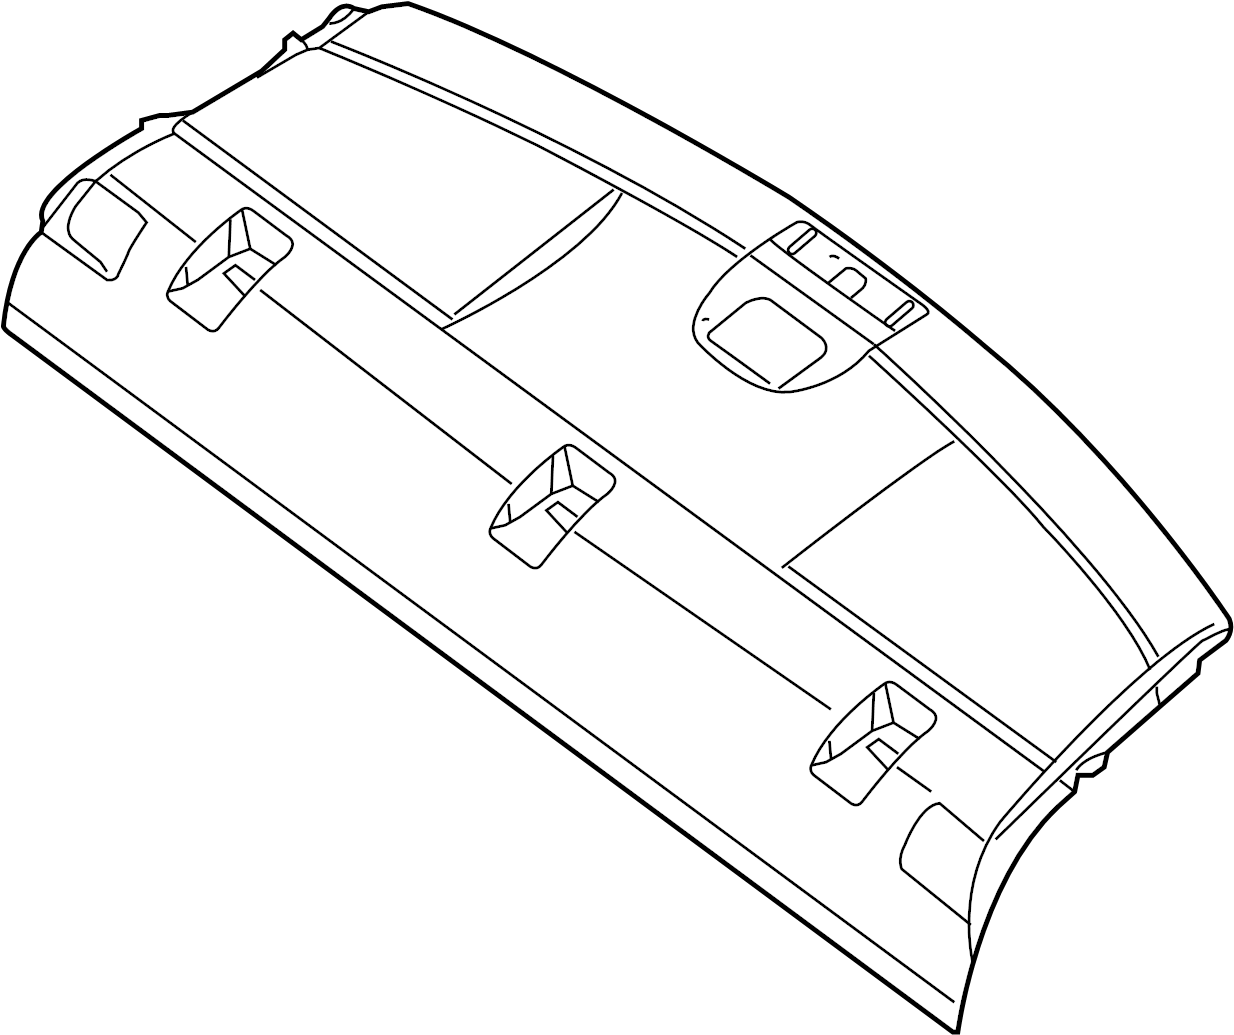 Nissan Sentra Package Tray Trim (Front, Rear, Upper